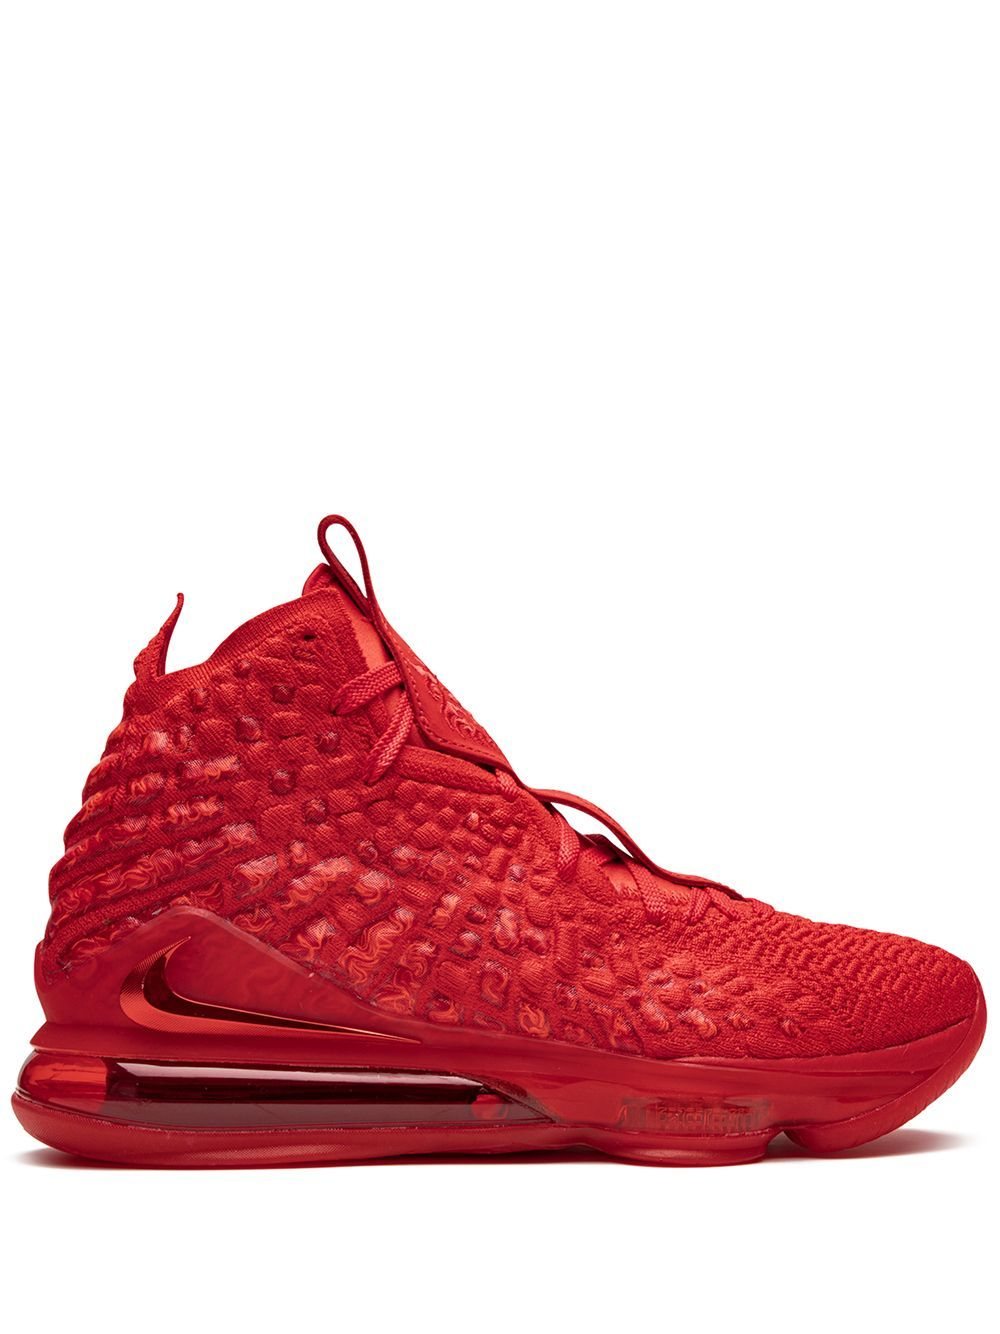 Nike LeBron 17 Sneakers - Farfetch   Red nike shoes, All red nike ...